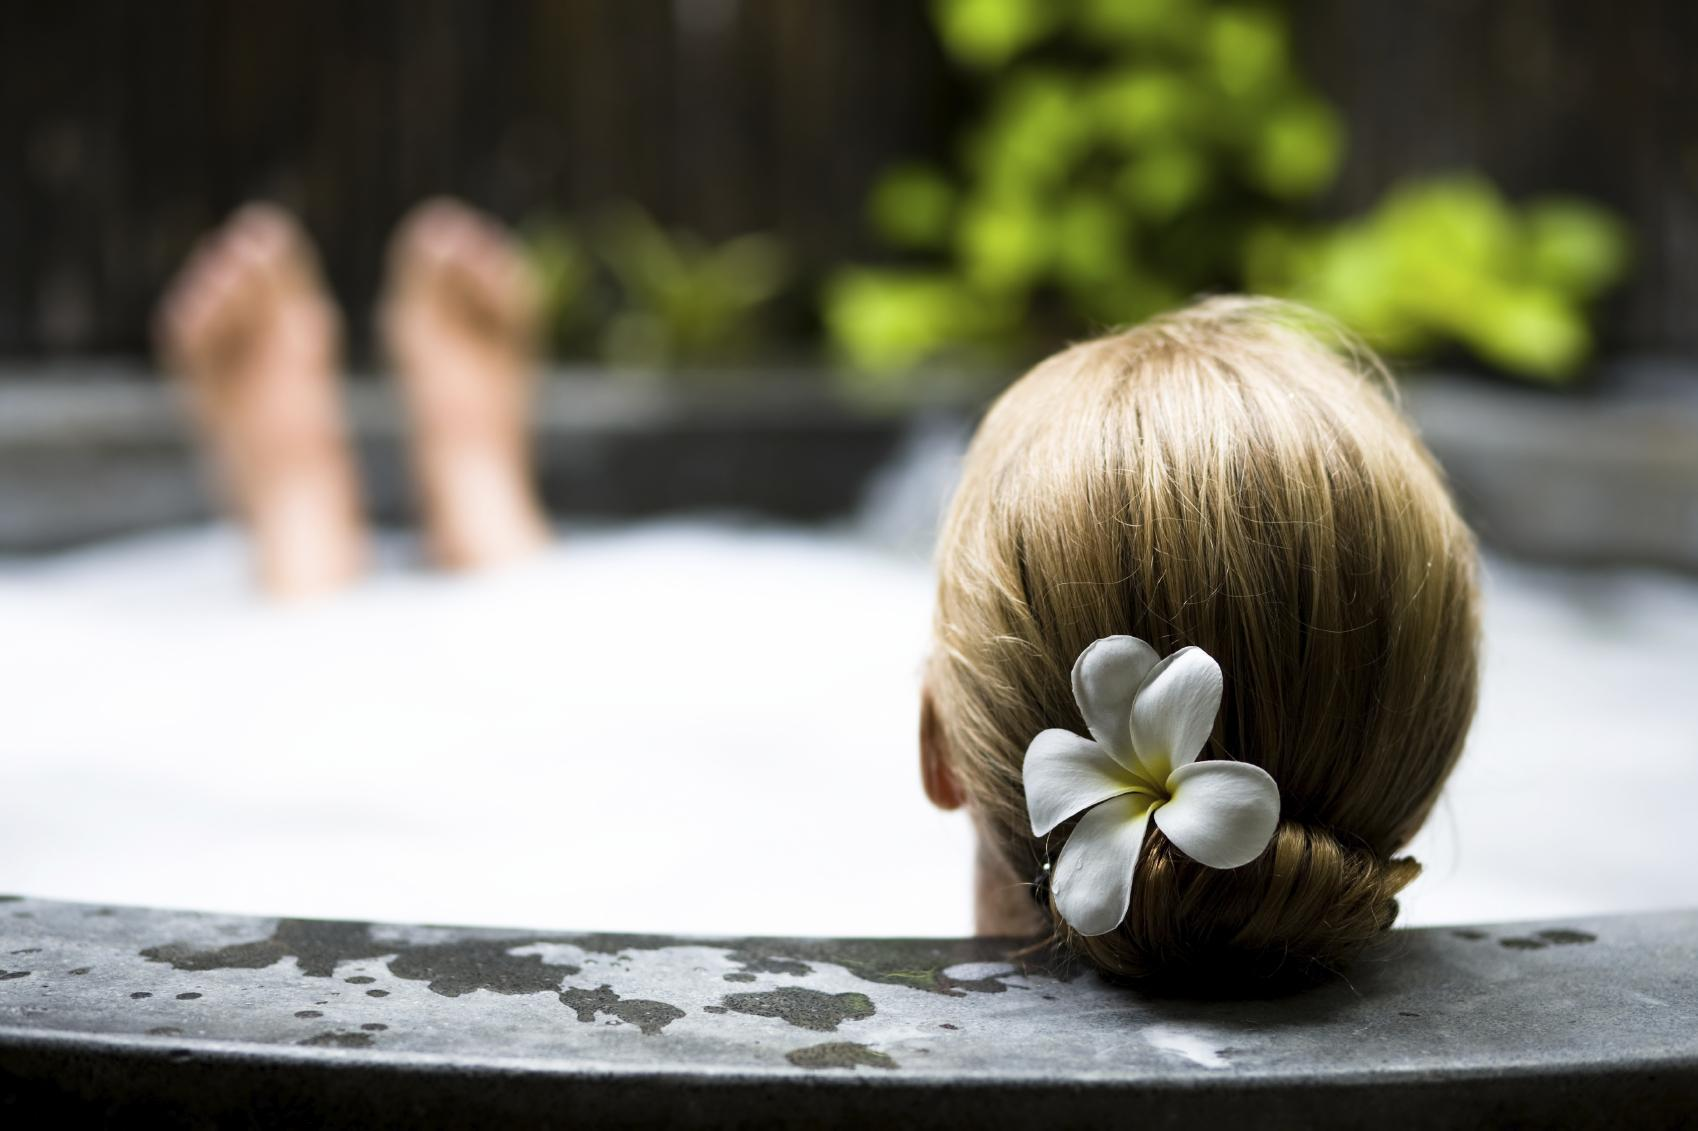 We Love Hot Tubs! helps you relax even more